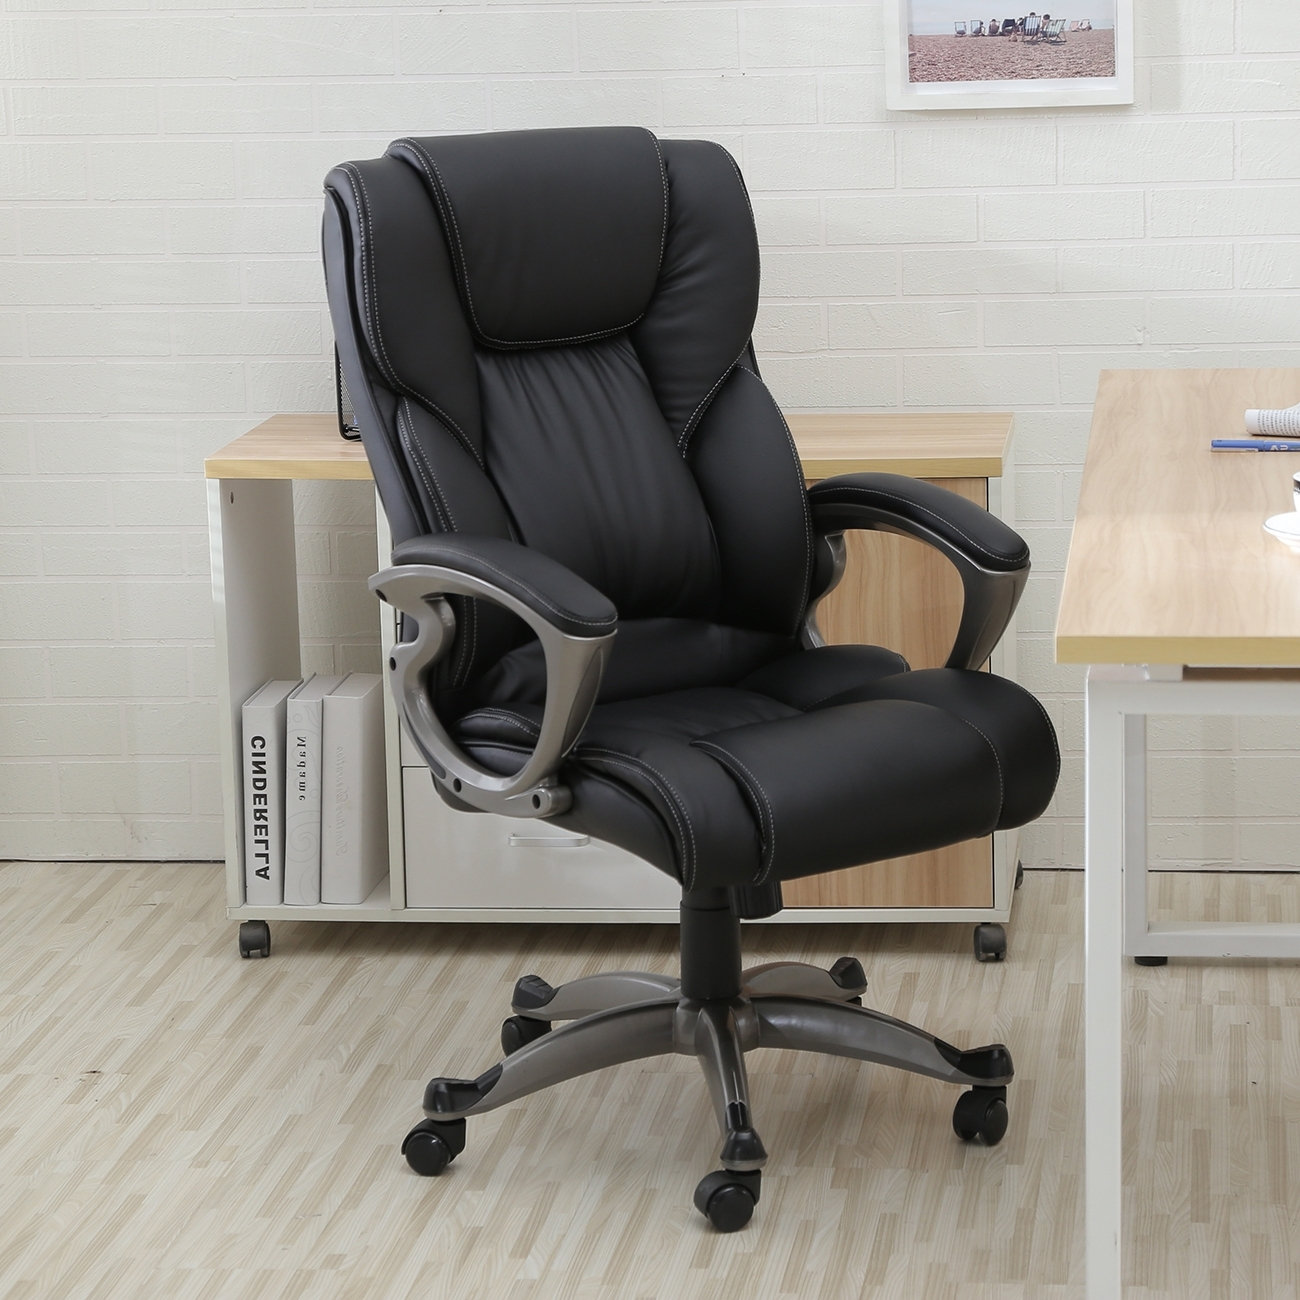 Belleze High Back Executive Faux Leather Office Chair, Black Within Famous Black Executive Office Chairs With High Back (View 1 of 20)